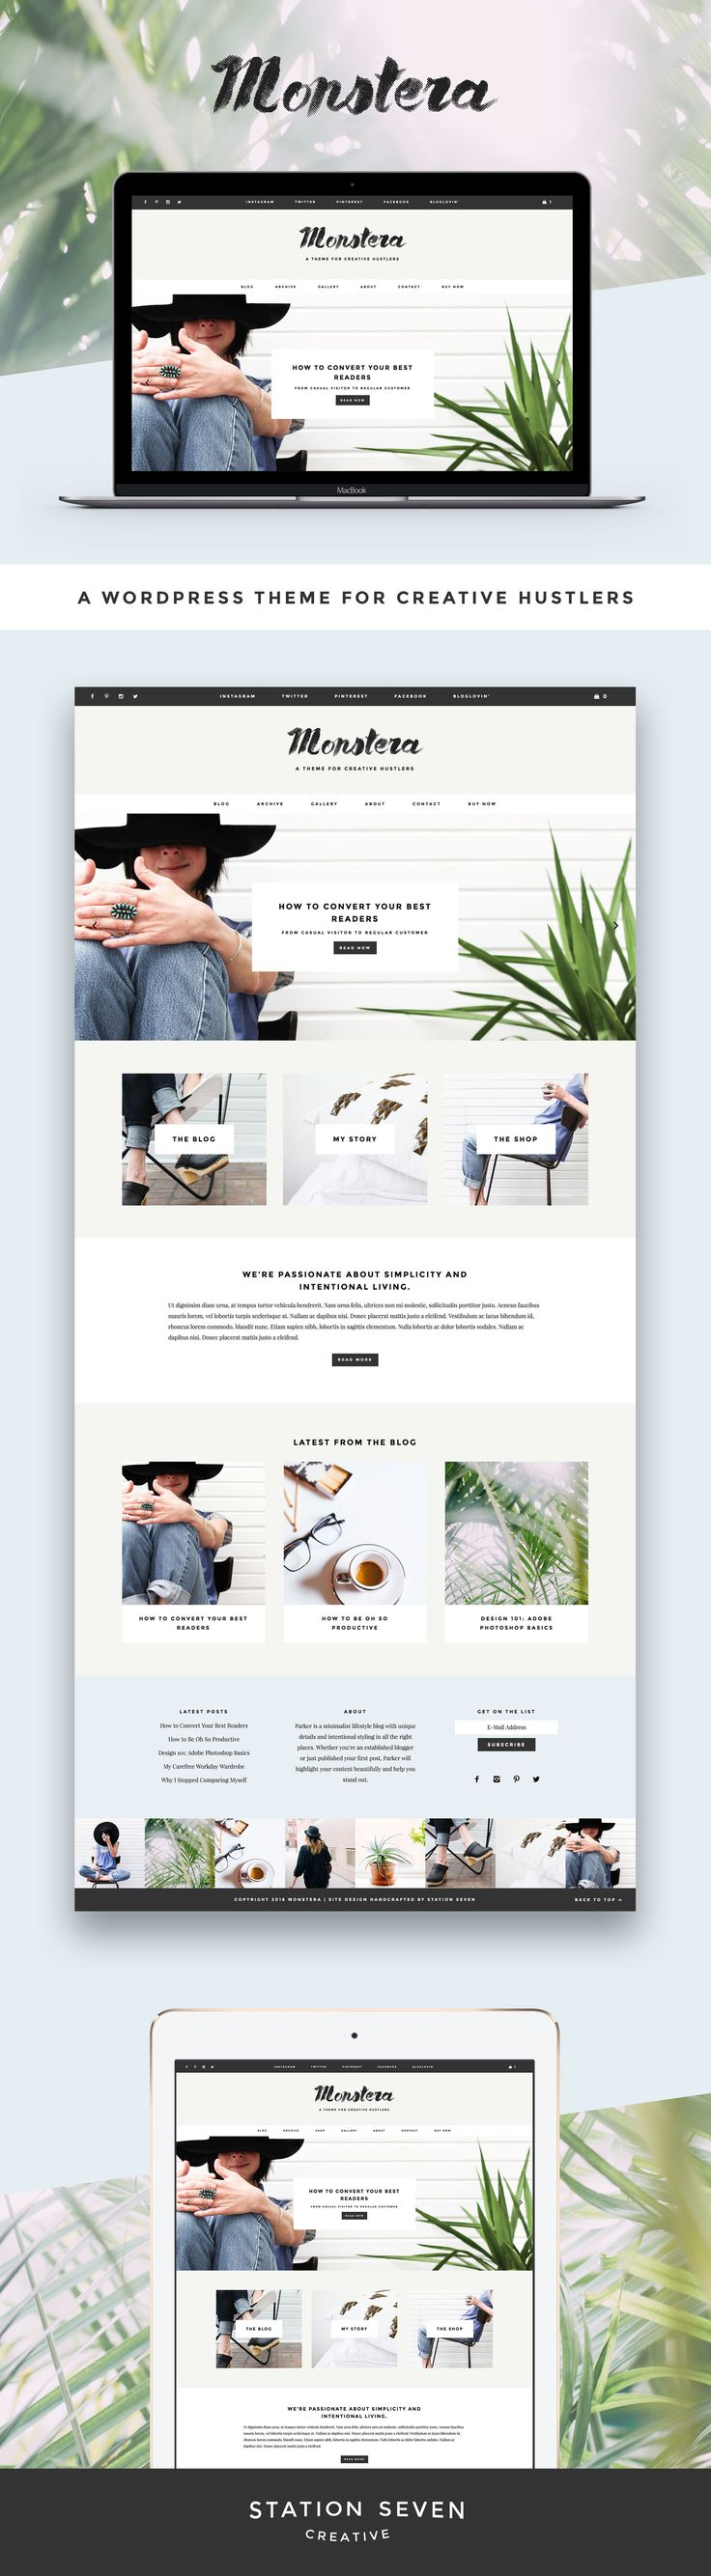 A minimalist theme with bold details and unique styling in all the right places. Station Seven's WordPress Monstera theme.